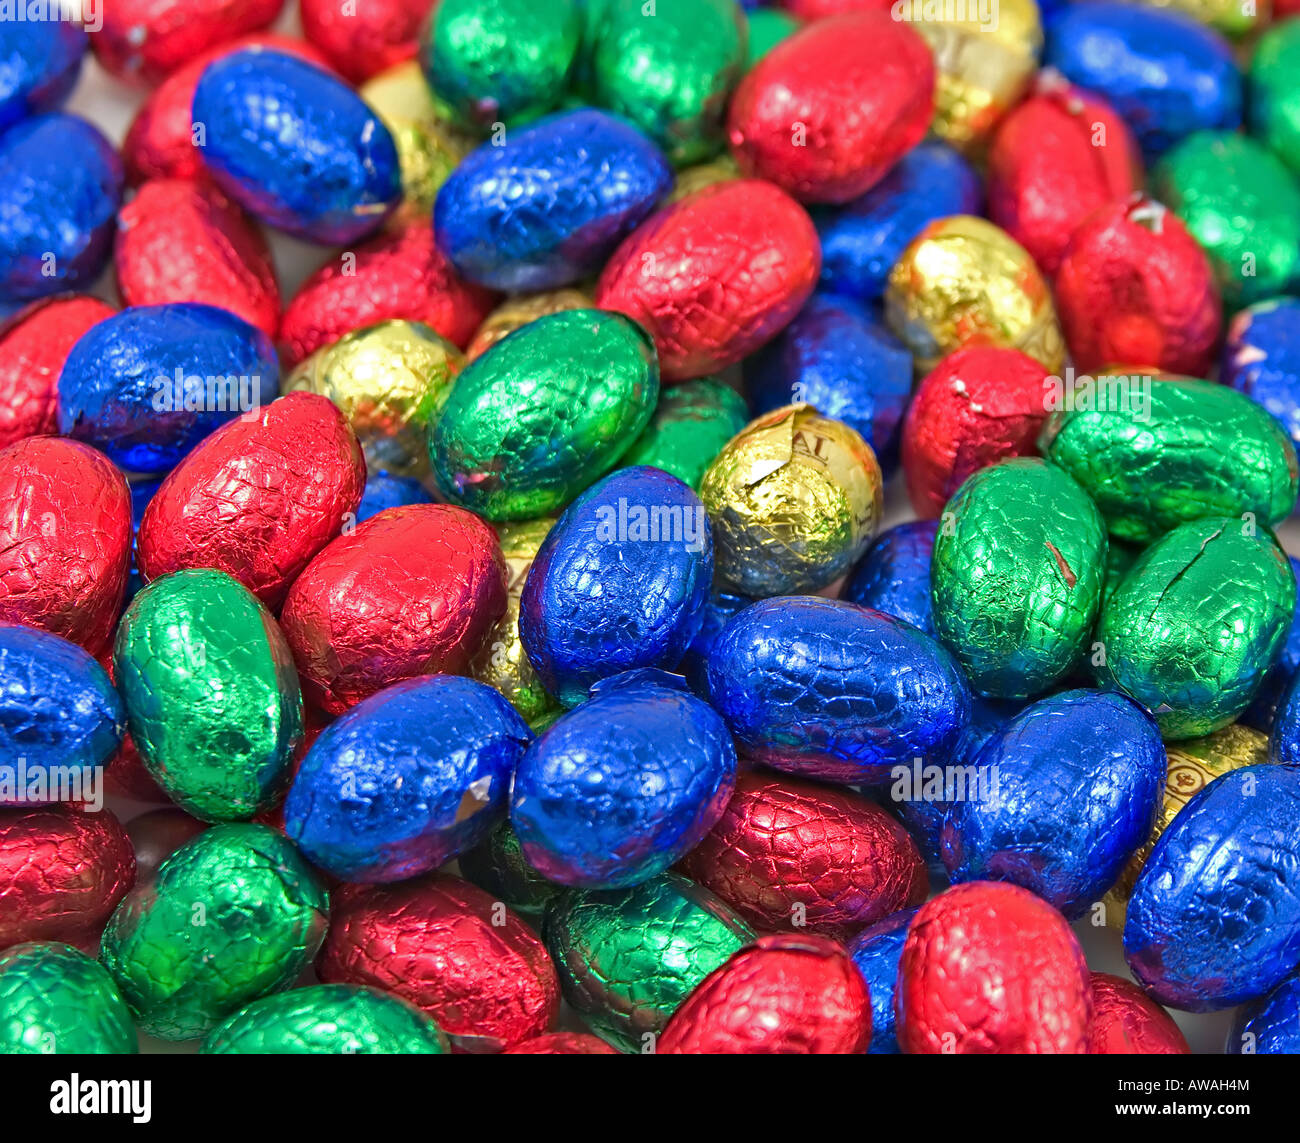 a large pile of colourful easter eggs - Stock Image